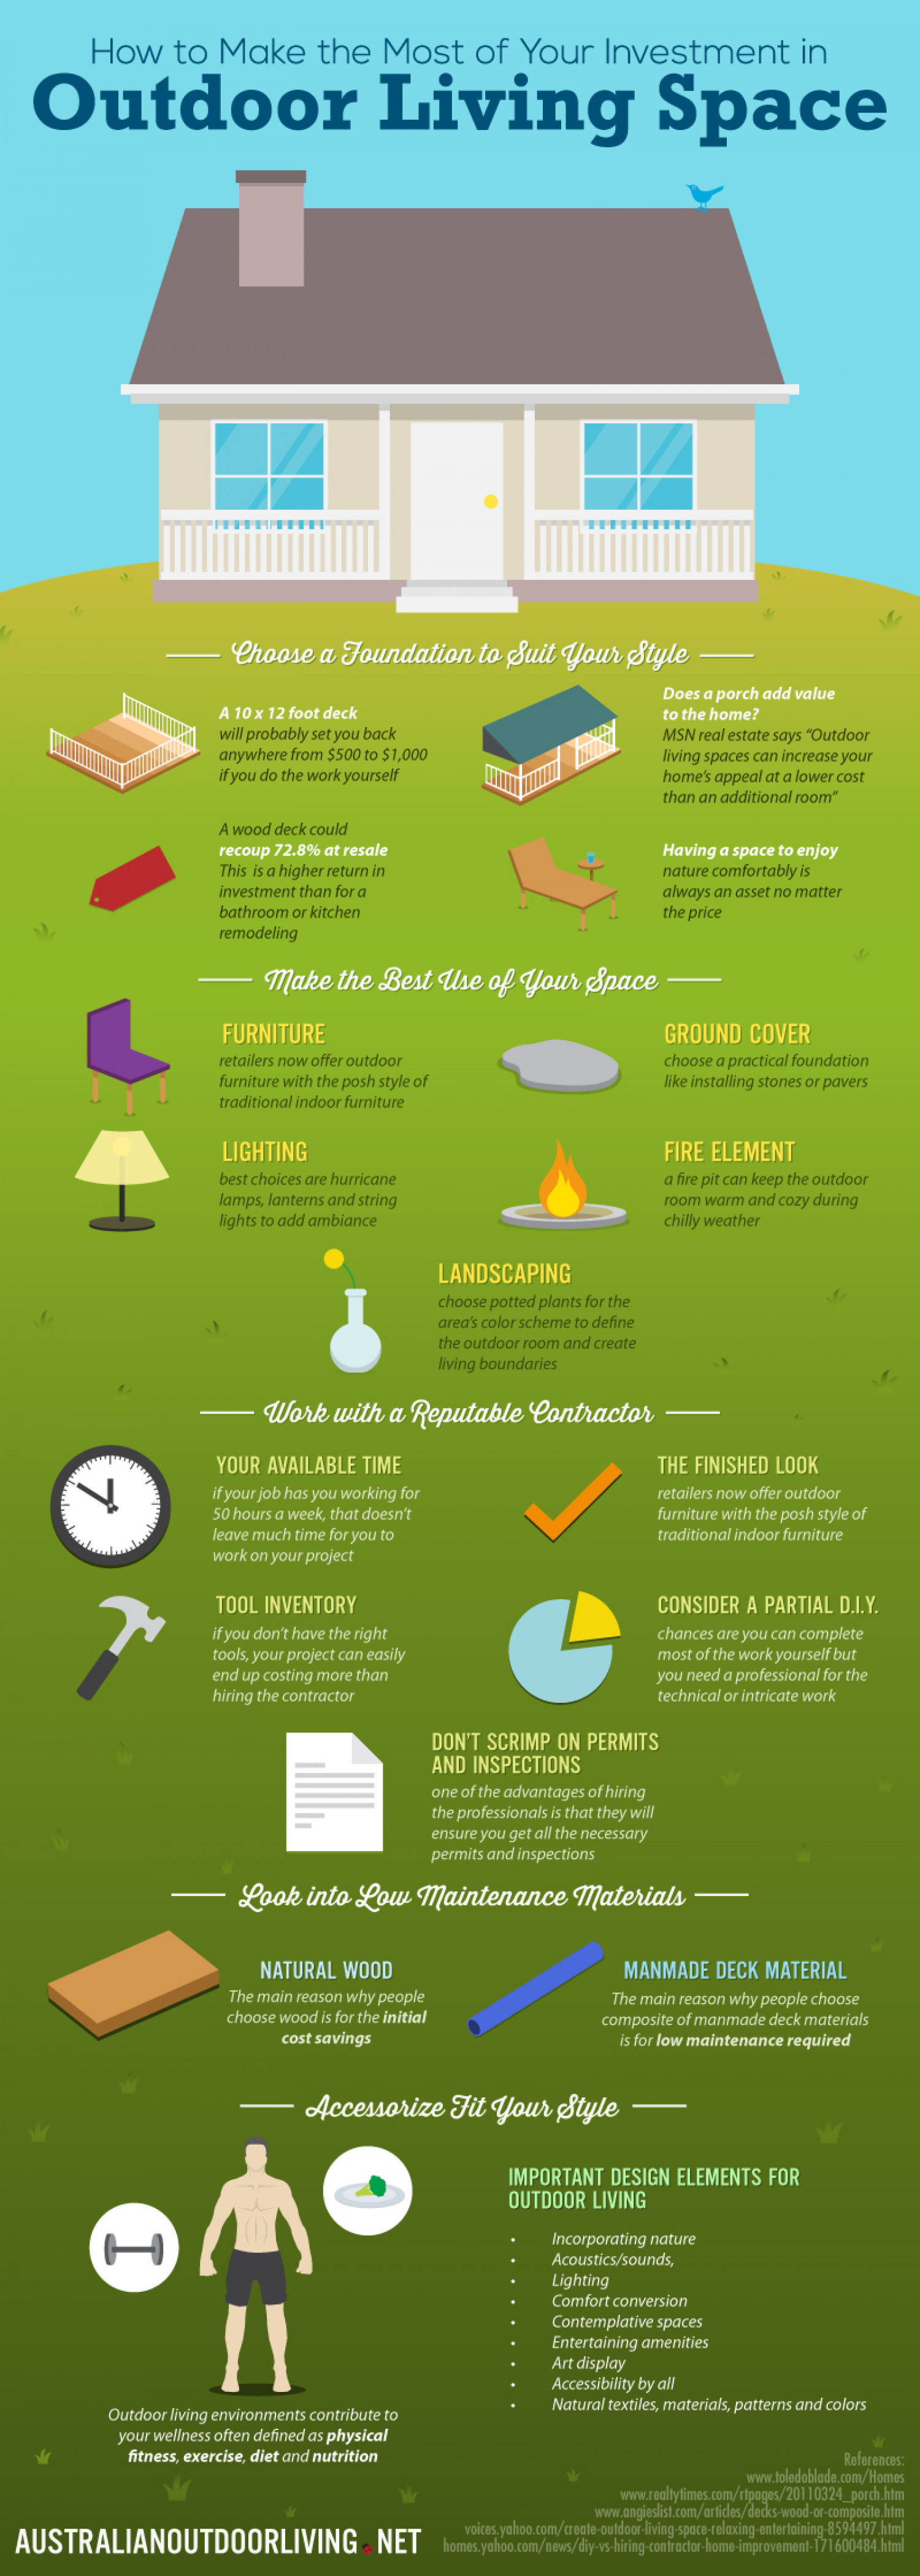 How to Make the Most of Your Investment in Outdoor Living Space Infographic